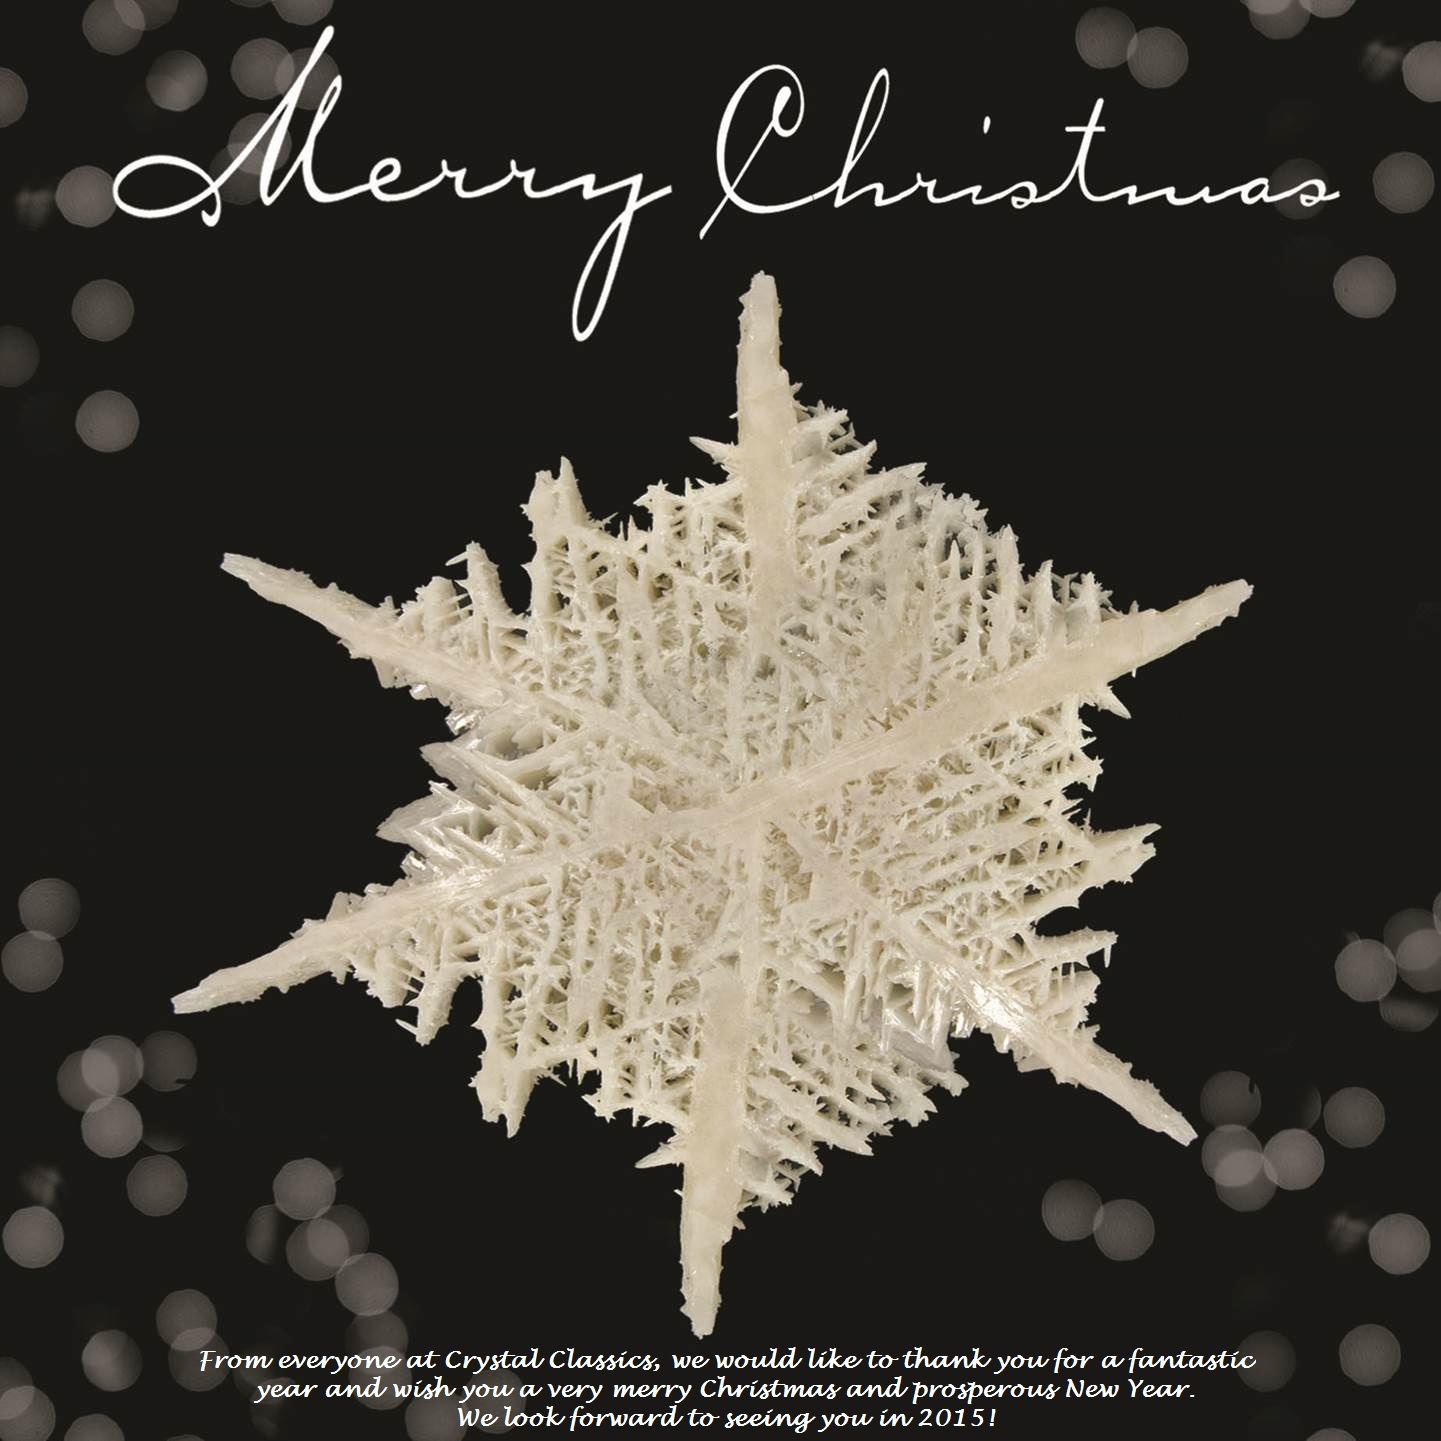 Wishing Everyone a Very Merry Christmas and Prosperous New Year